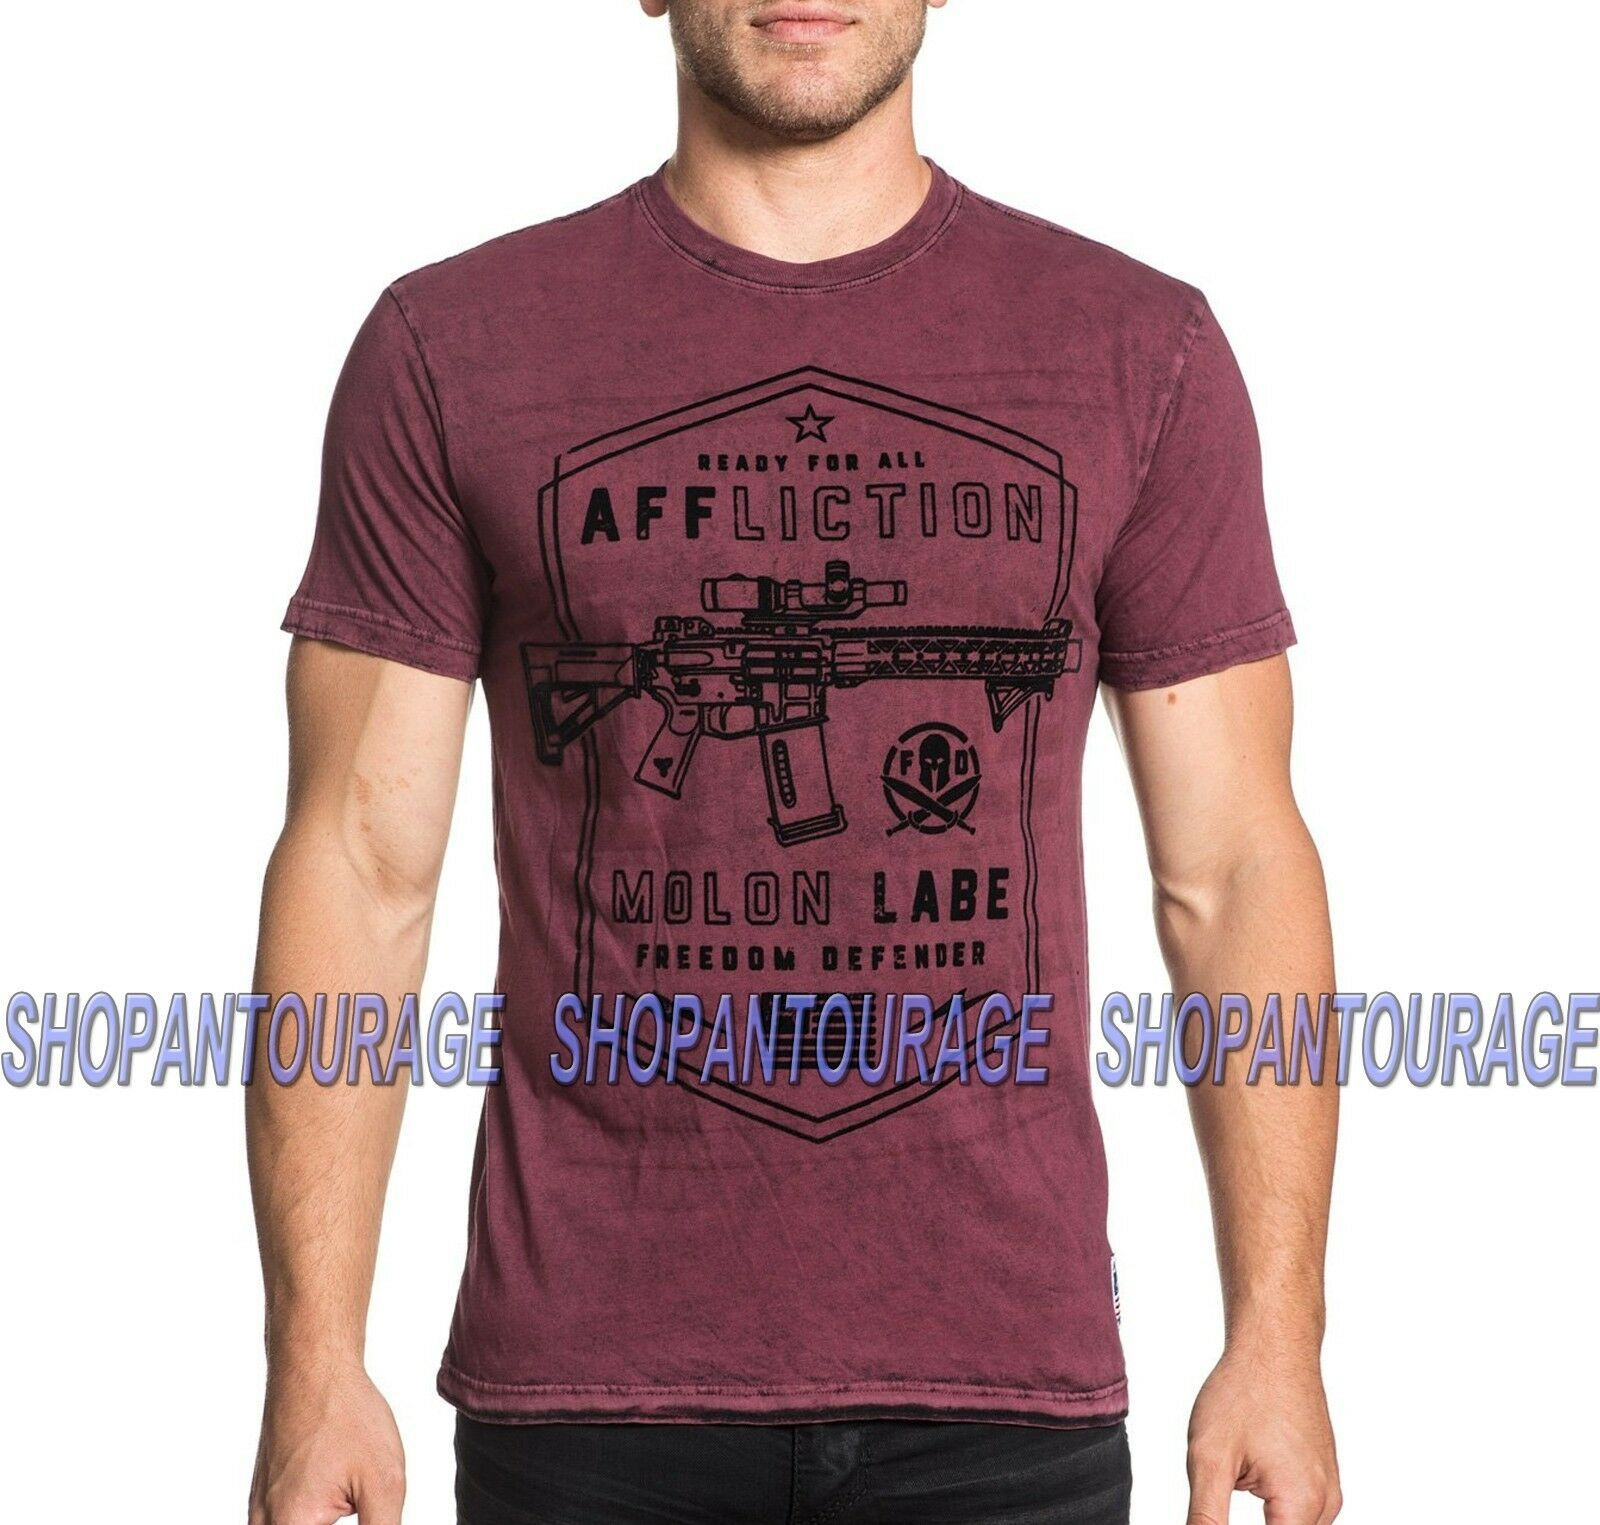 Primary image for Affliction Molon Labe A18467 New S/s GI Foundation Reversible T-shirt For Men